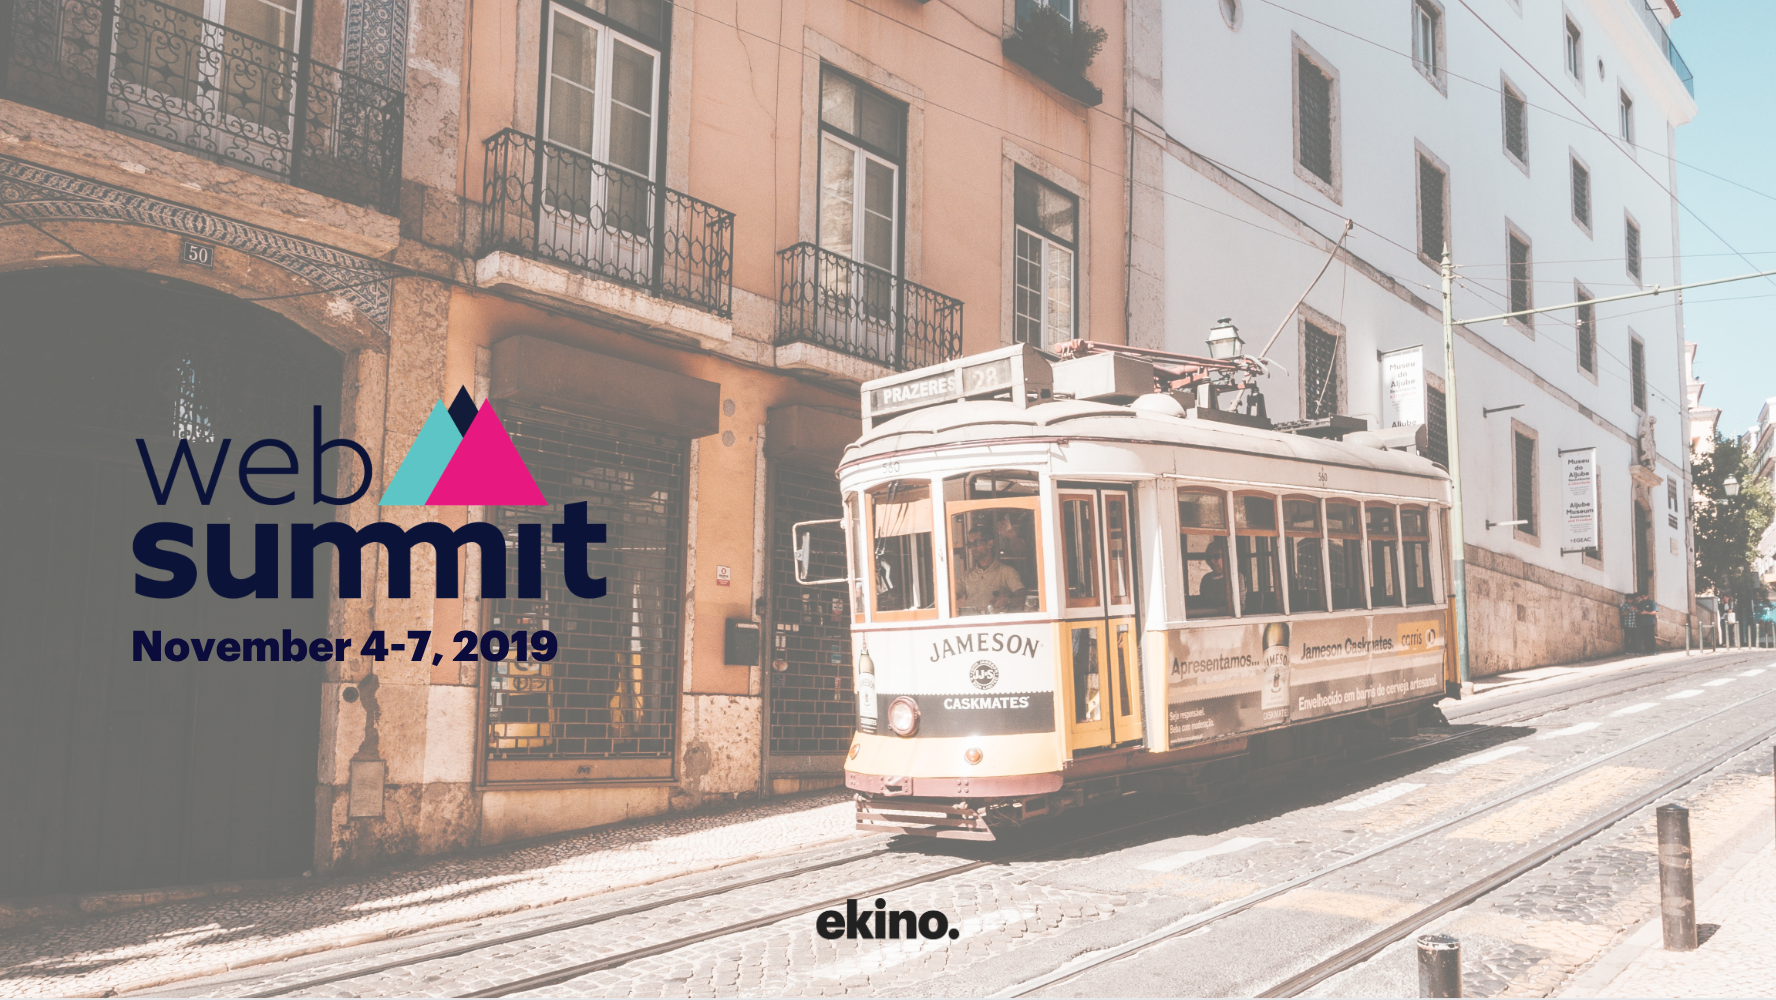 Web Summit Lisbon Tramway